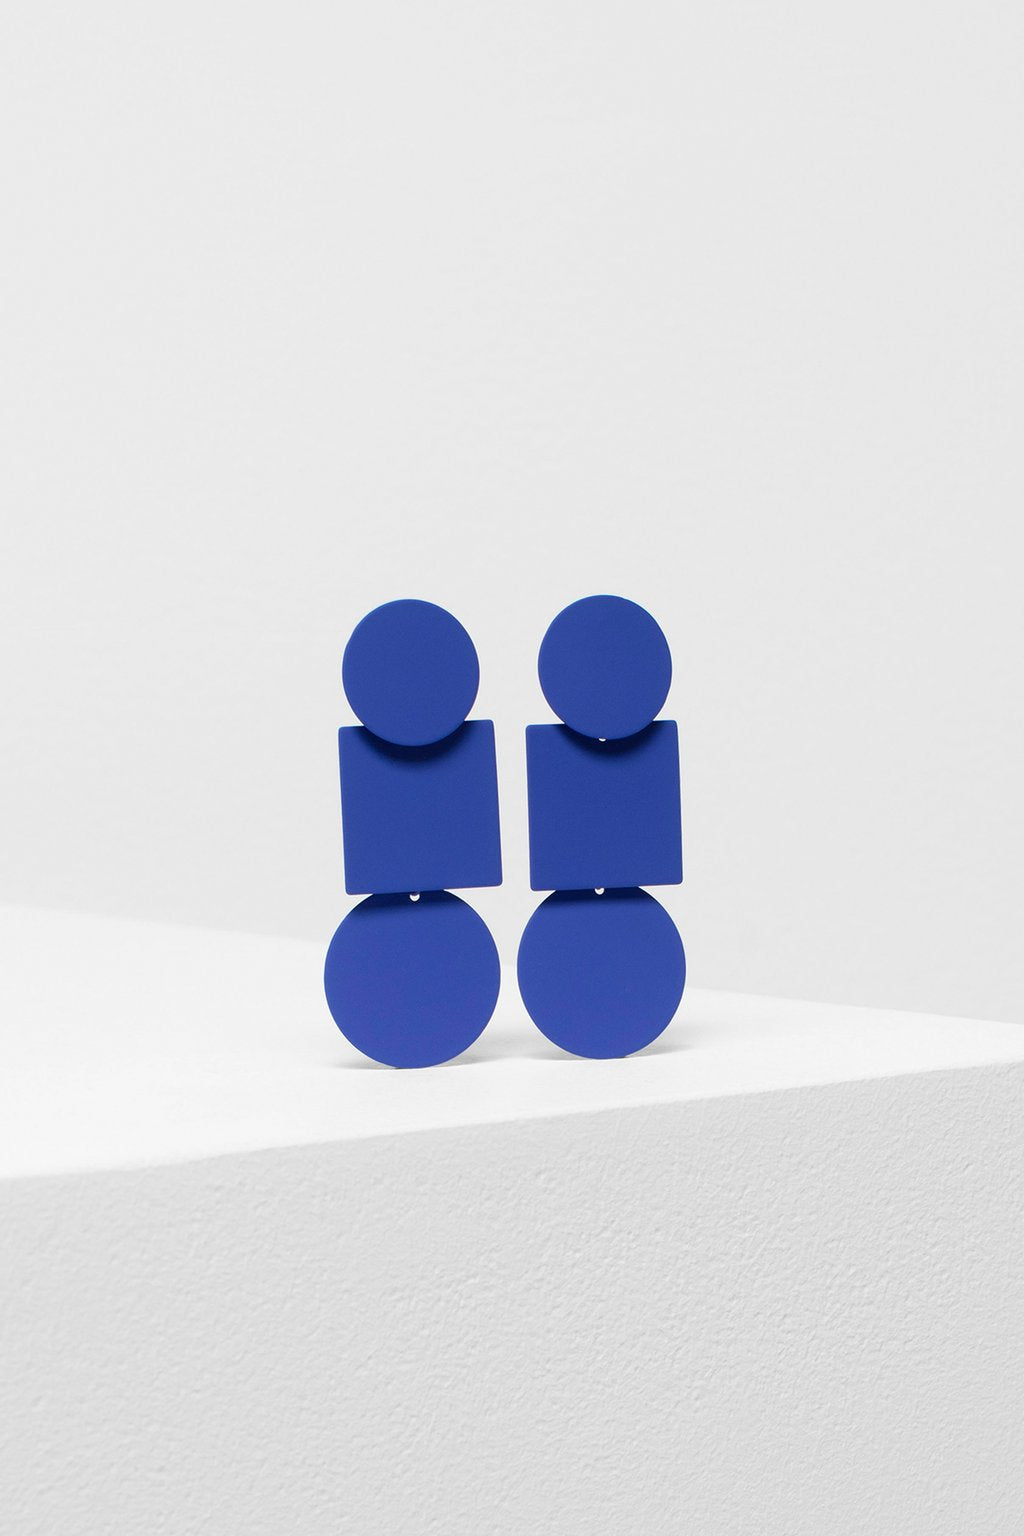 ELK The Label - Fala Drop Earrings - Blue online at PAYA boutique